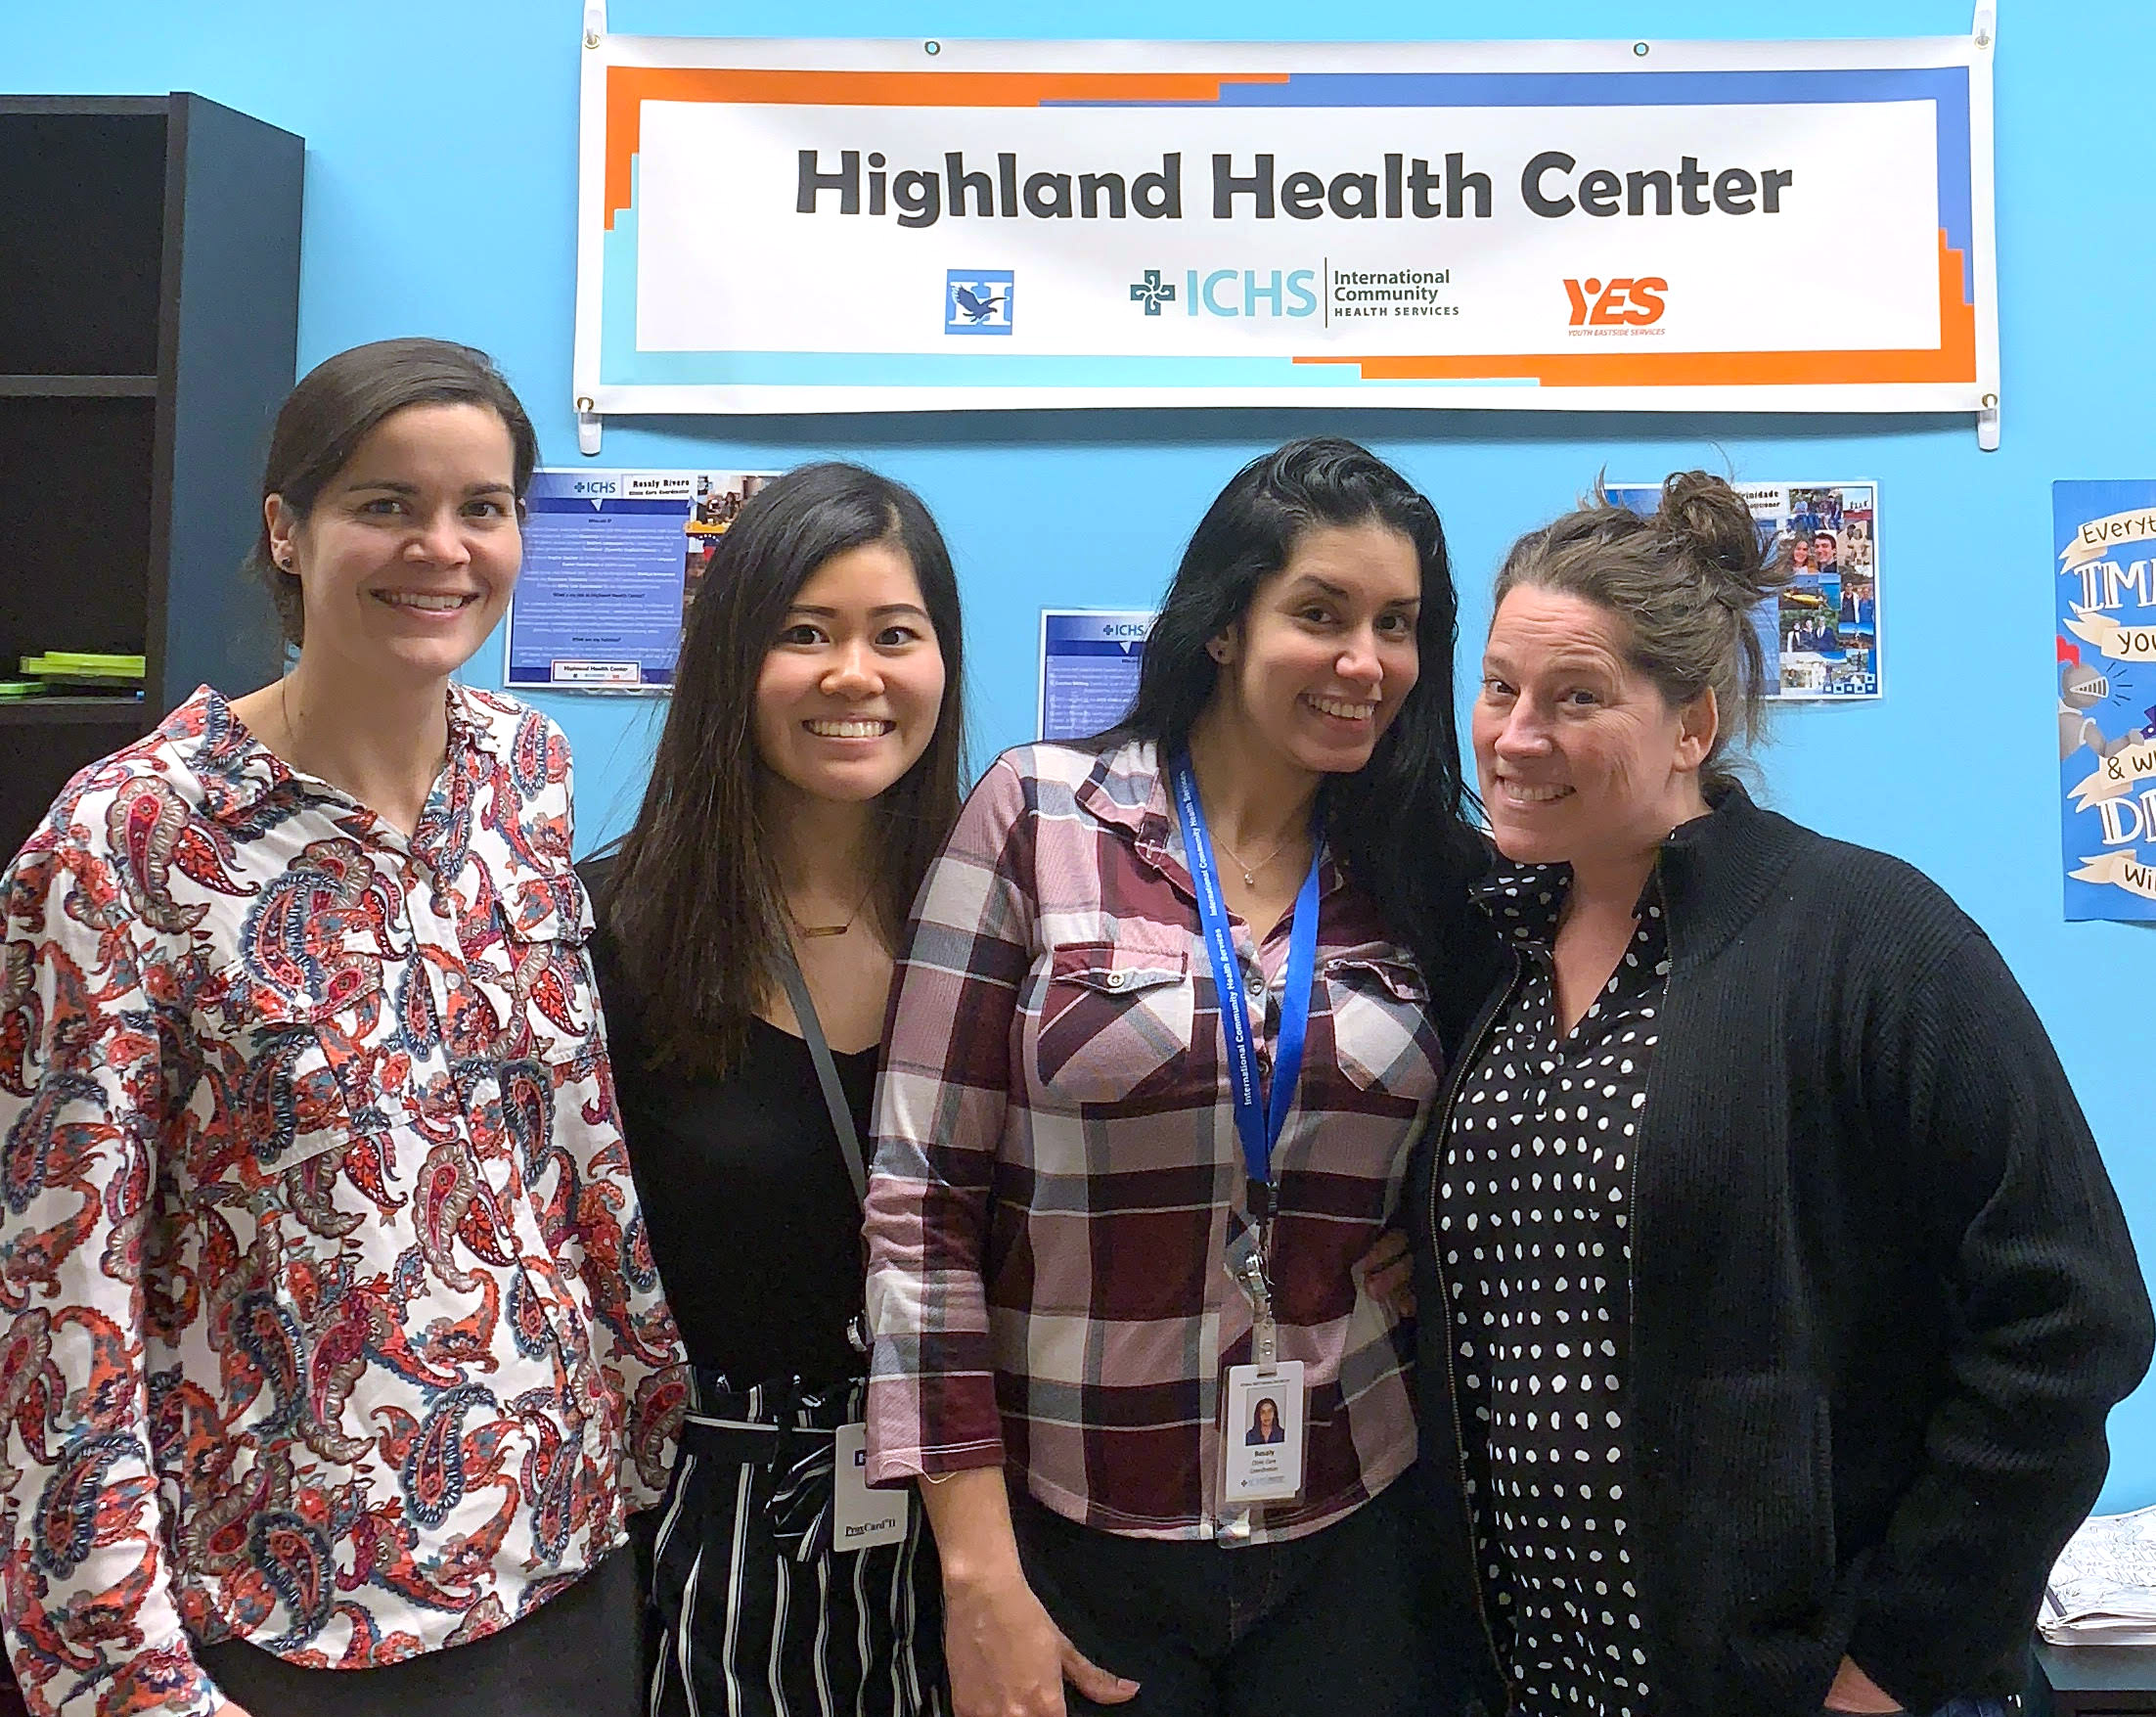 highland health center